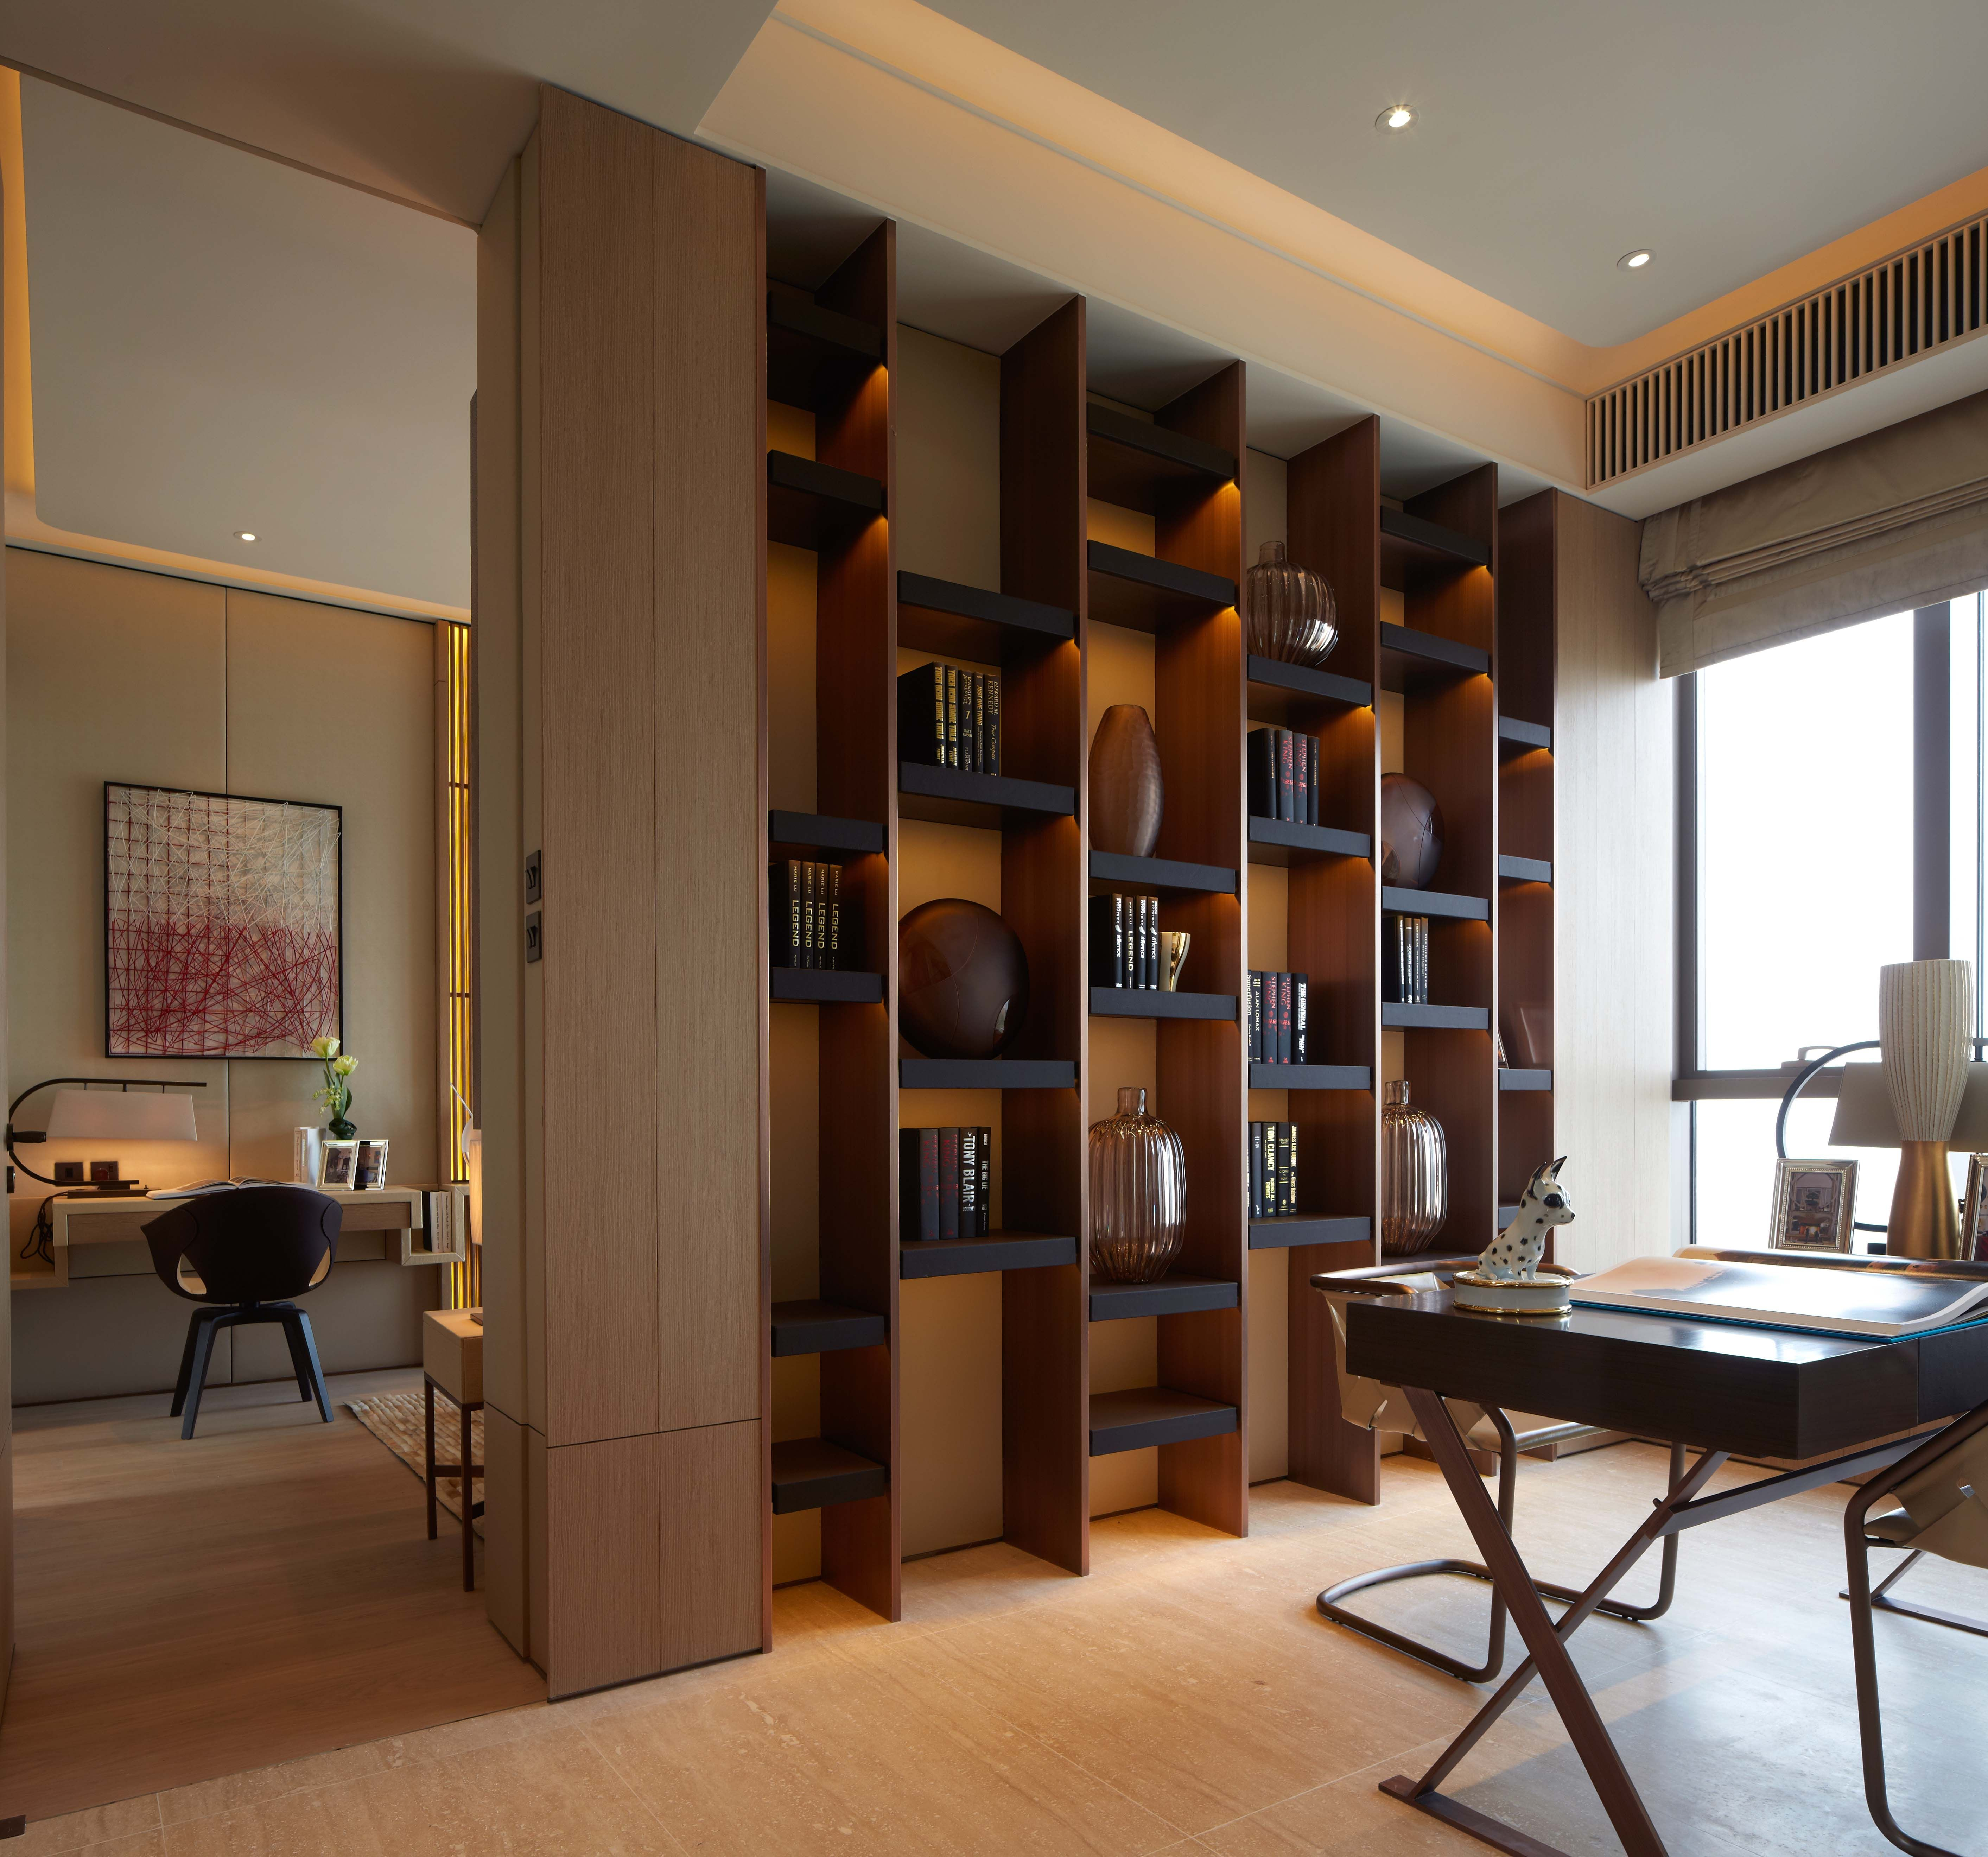 lcl design hong kong interiors and architecture photography by chester pinterest shelves. Black Bedroom Furniture Sets. Home Design Ideas